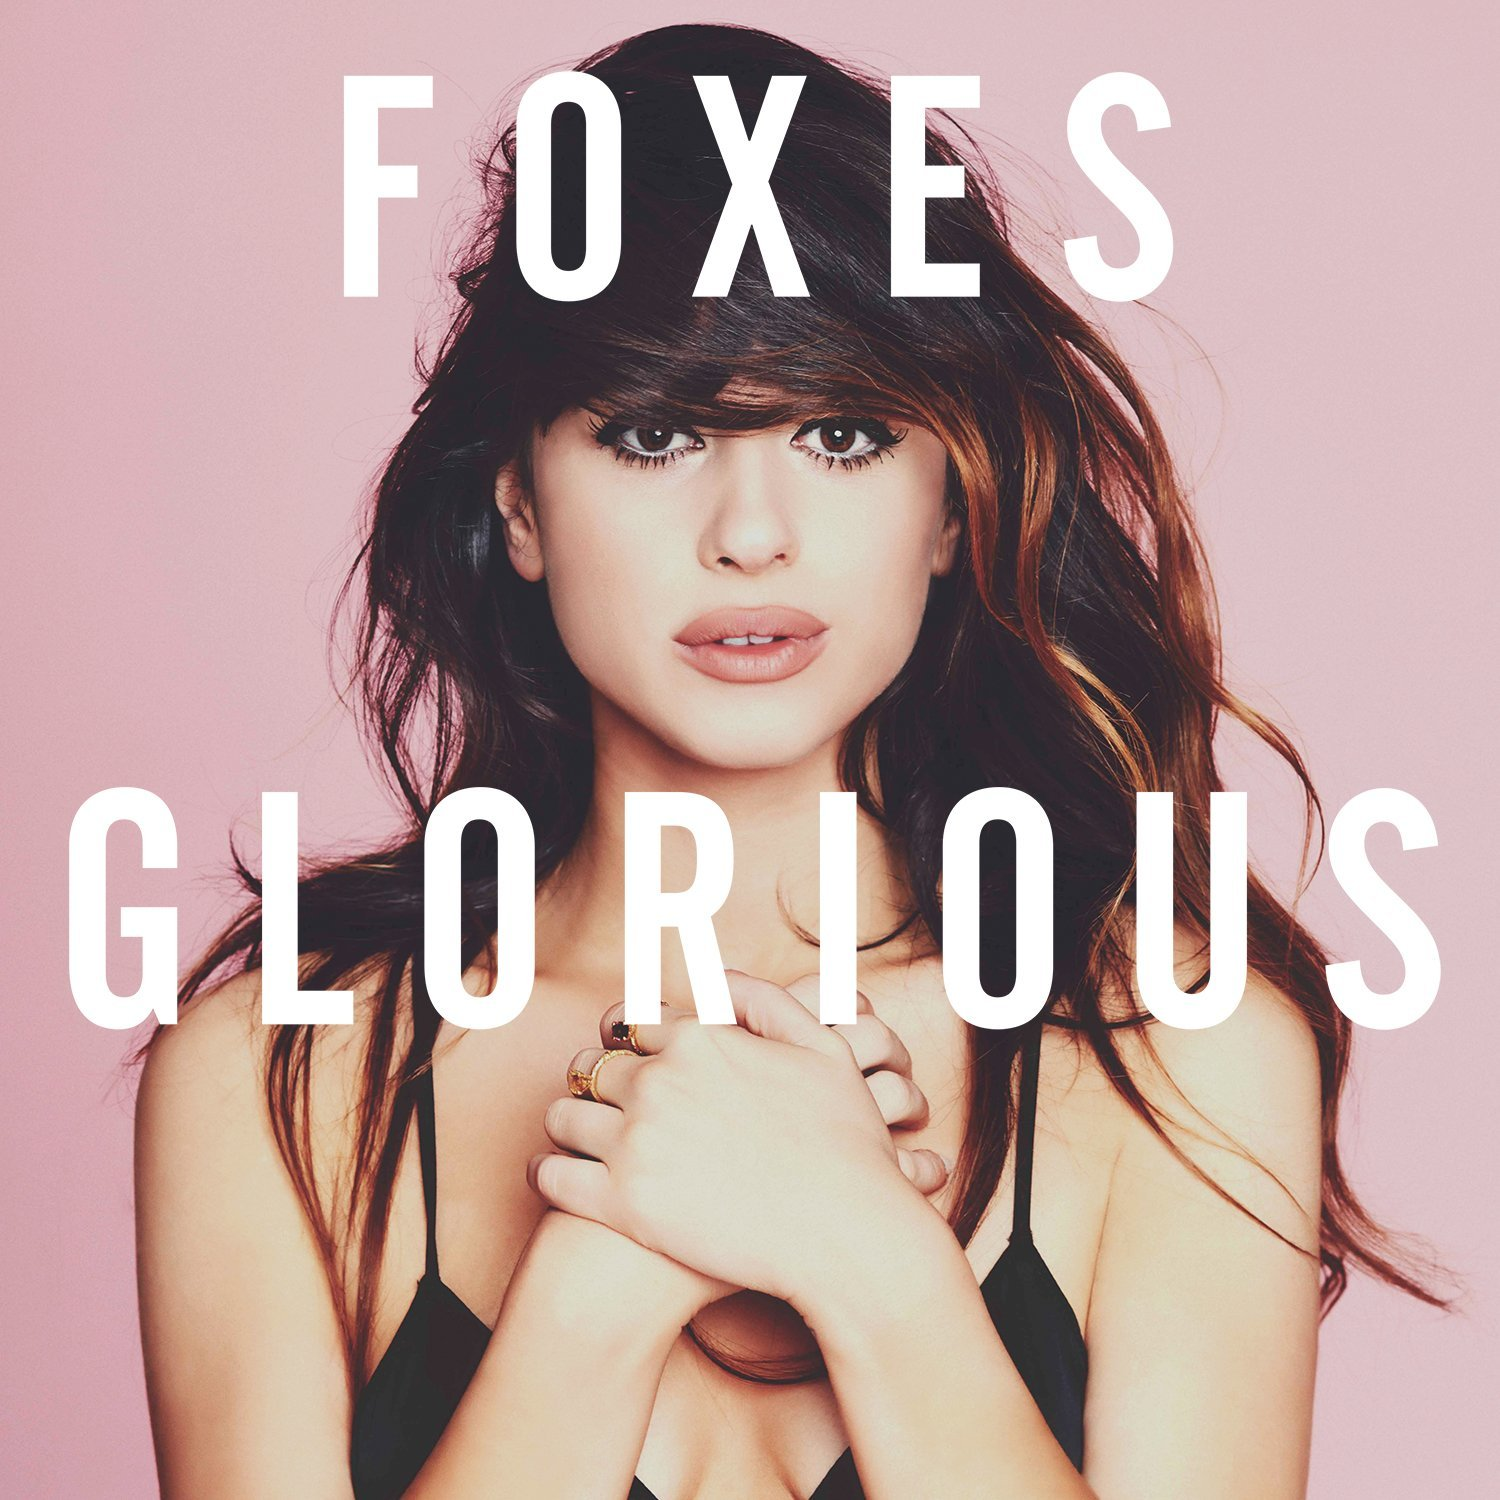 Foxes Glorious Album Artwork